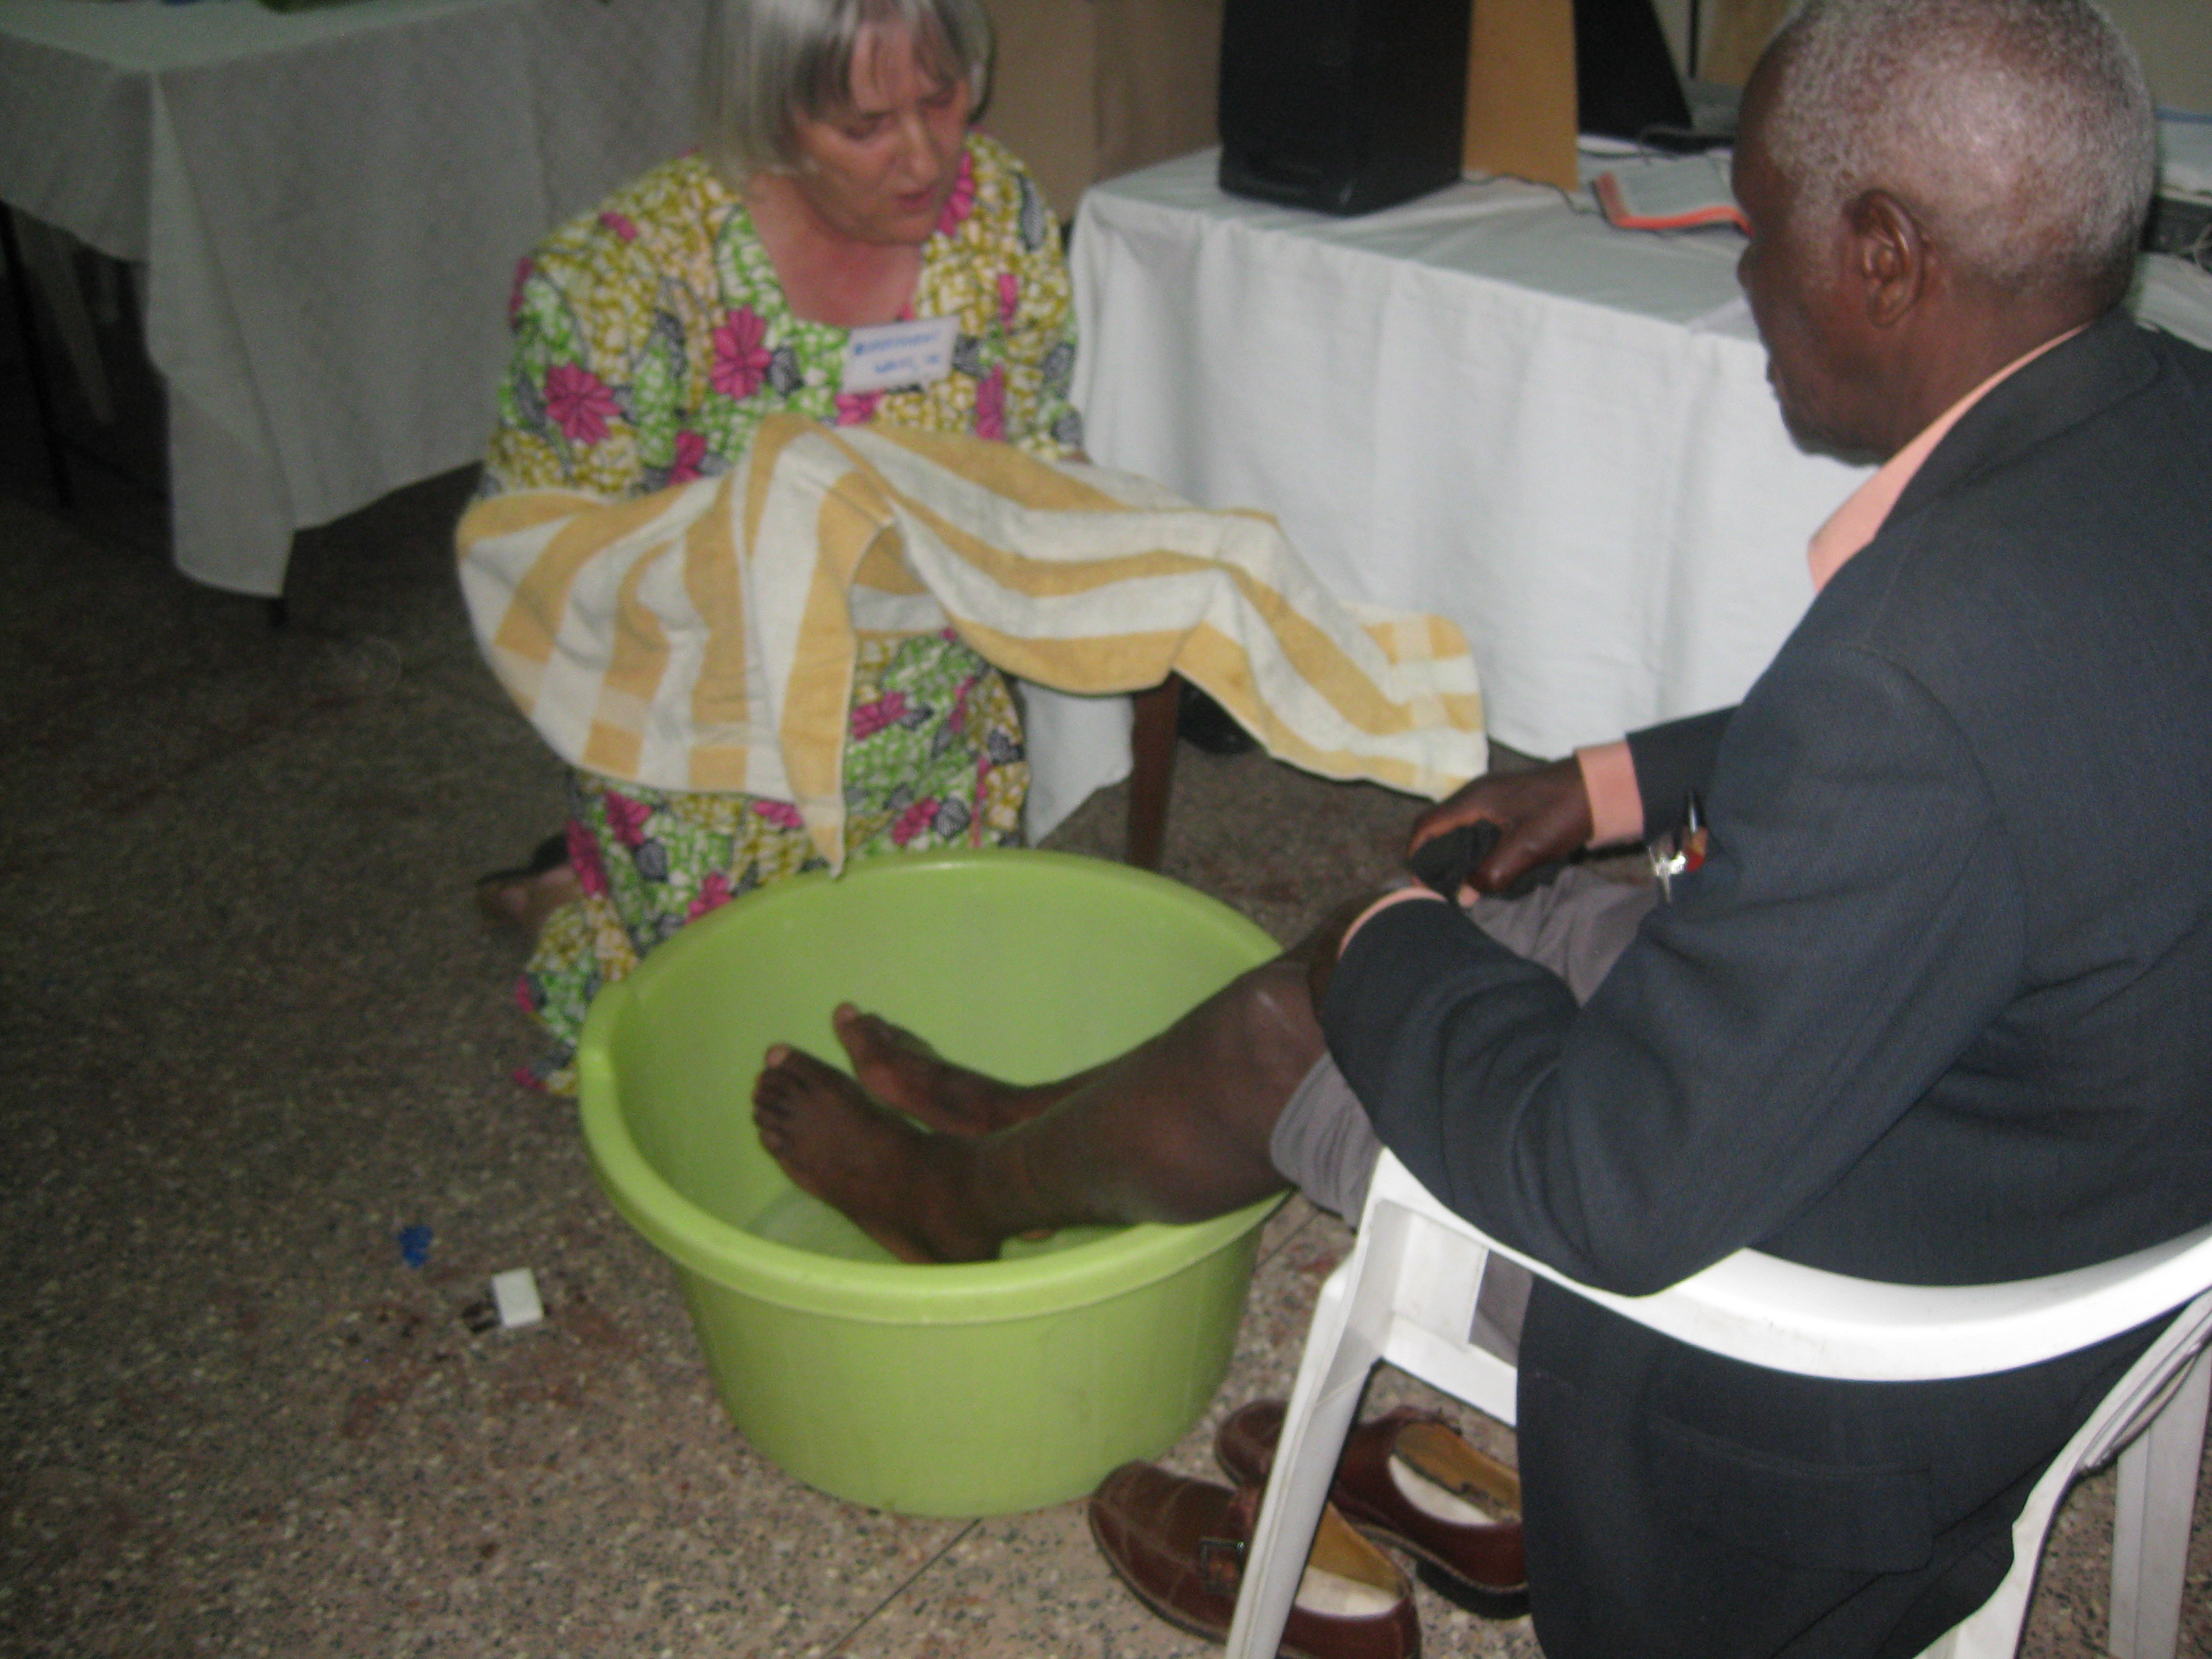 Foot Washing - A Sign of Repentance